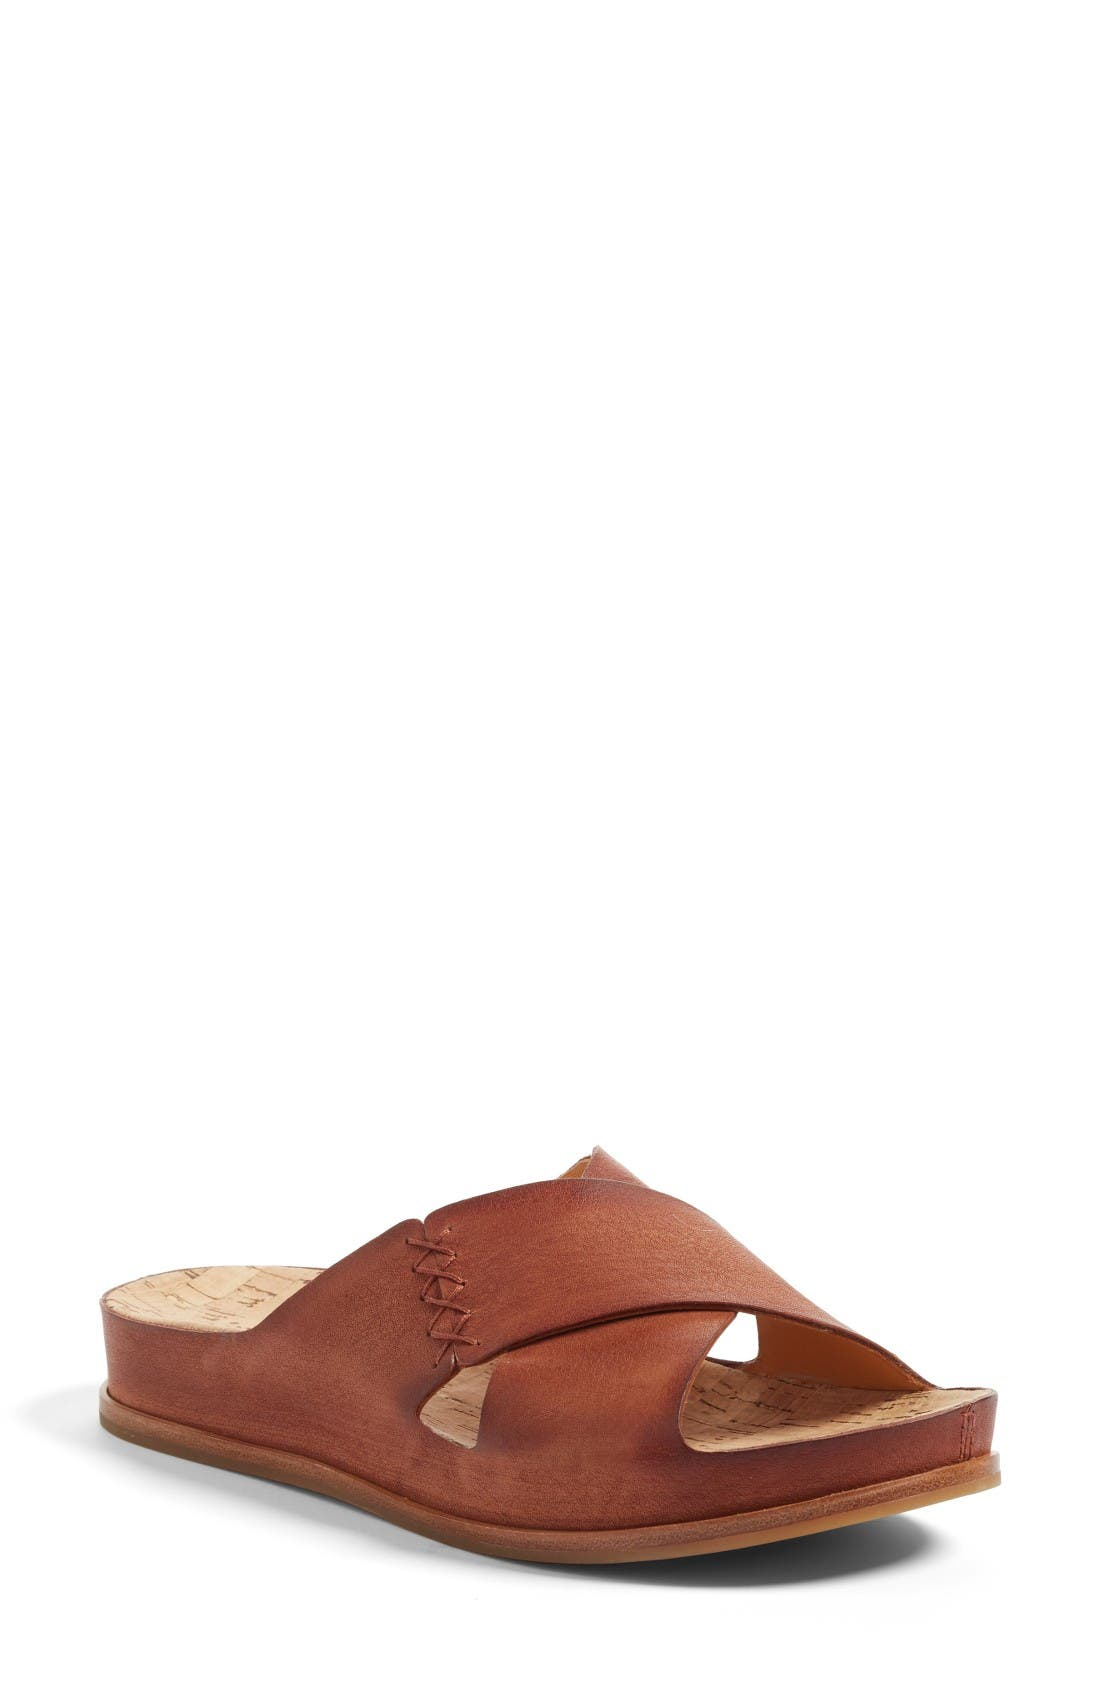 Alternate Image 1 Selected - Kork-Ease® Amboy Slide Sandal (Women)